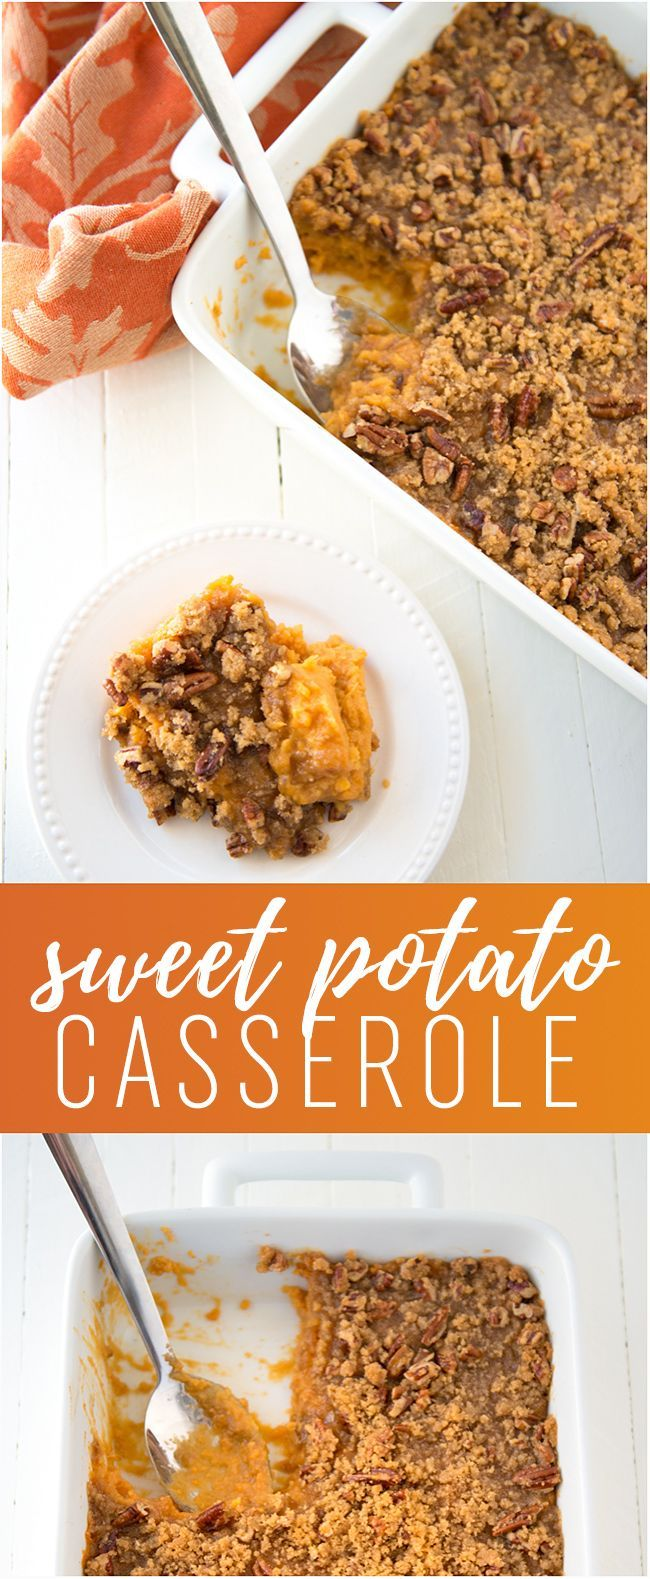 Sweet Potato Casserole with Pecan Brown Sugar Topping - Is it a side dish, is it a dessert? Who cares! It's delicious and perfect for your Thanksgiving table. from @crissy